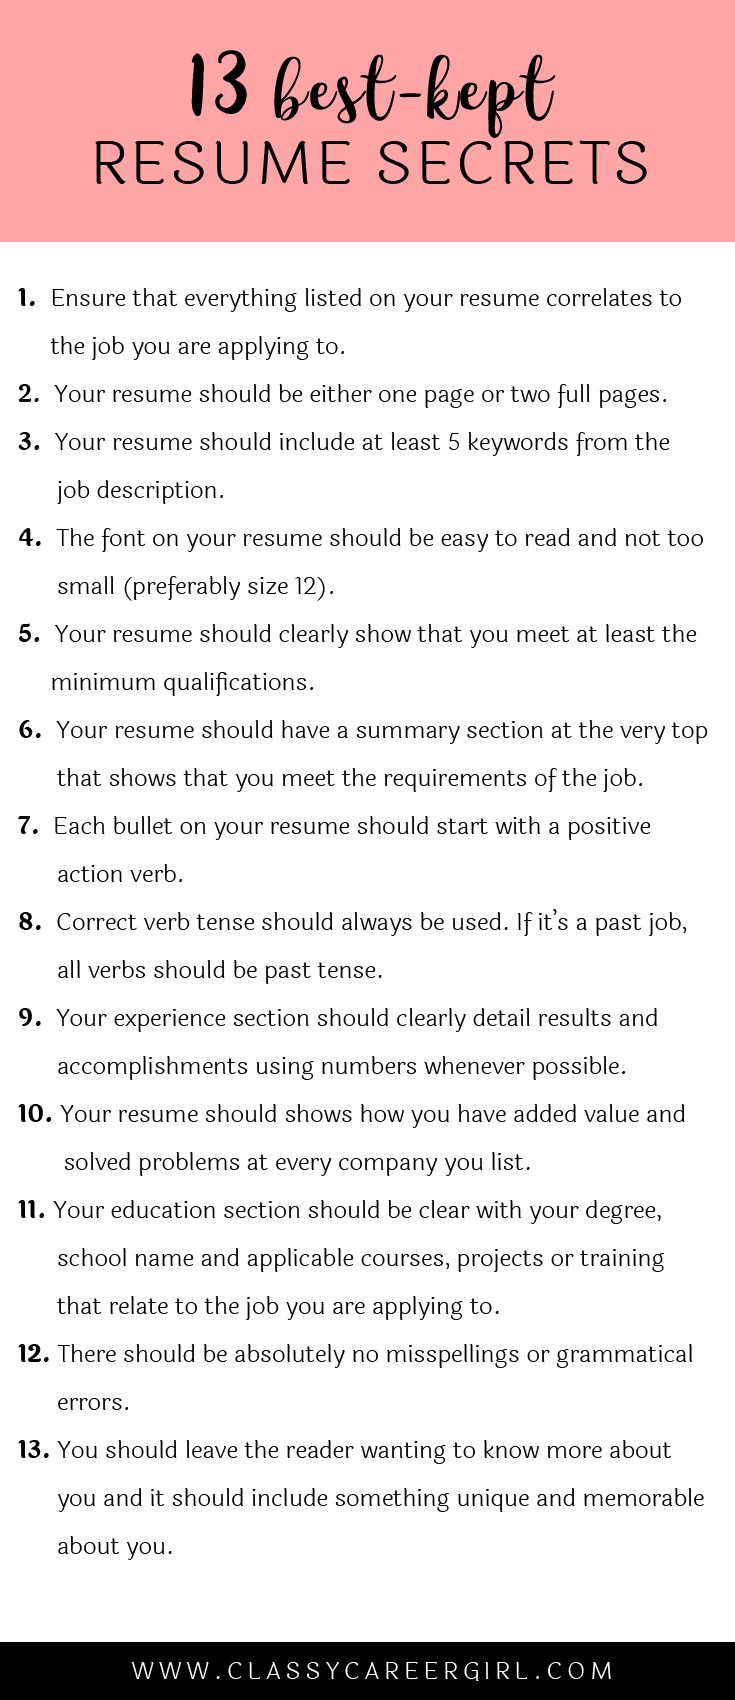 Opposenewapstandardsus  Prepossessing  Ideas About Resume On Pinterest  Cv Format Resume  With Fair Some Hiring Managers Will Toss Your Resume Out If You Dont Know These  With Amazing Resume Purpose Statement Also Dice Resume In Addition Truck Driver Resume Sample And Graphic Designer Resume Examples As Well As How To Send A Resume By Email Additionally Program Director Resume From Pinterestcom With Opposenewapstandardsus  Fair  Ideas About Resume On Pinterest  Cv Format Resume  With Amazing Some Hiring Managers Will Toss Your Resume Out If You Dont Know These  And Prepossessing Resume Purpose Statement Also Dice Resume In Addition Truck Driver Resume Sample From Pinterestcom